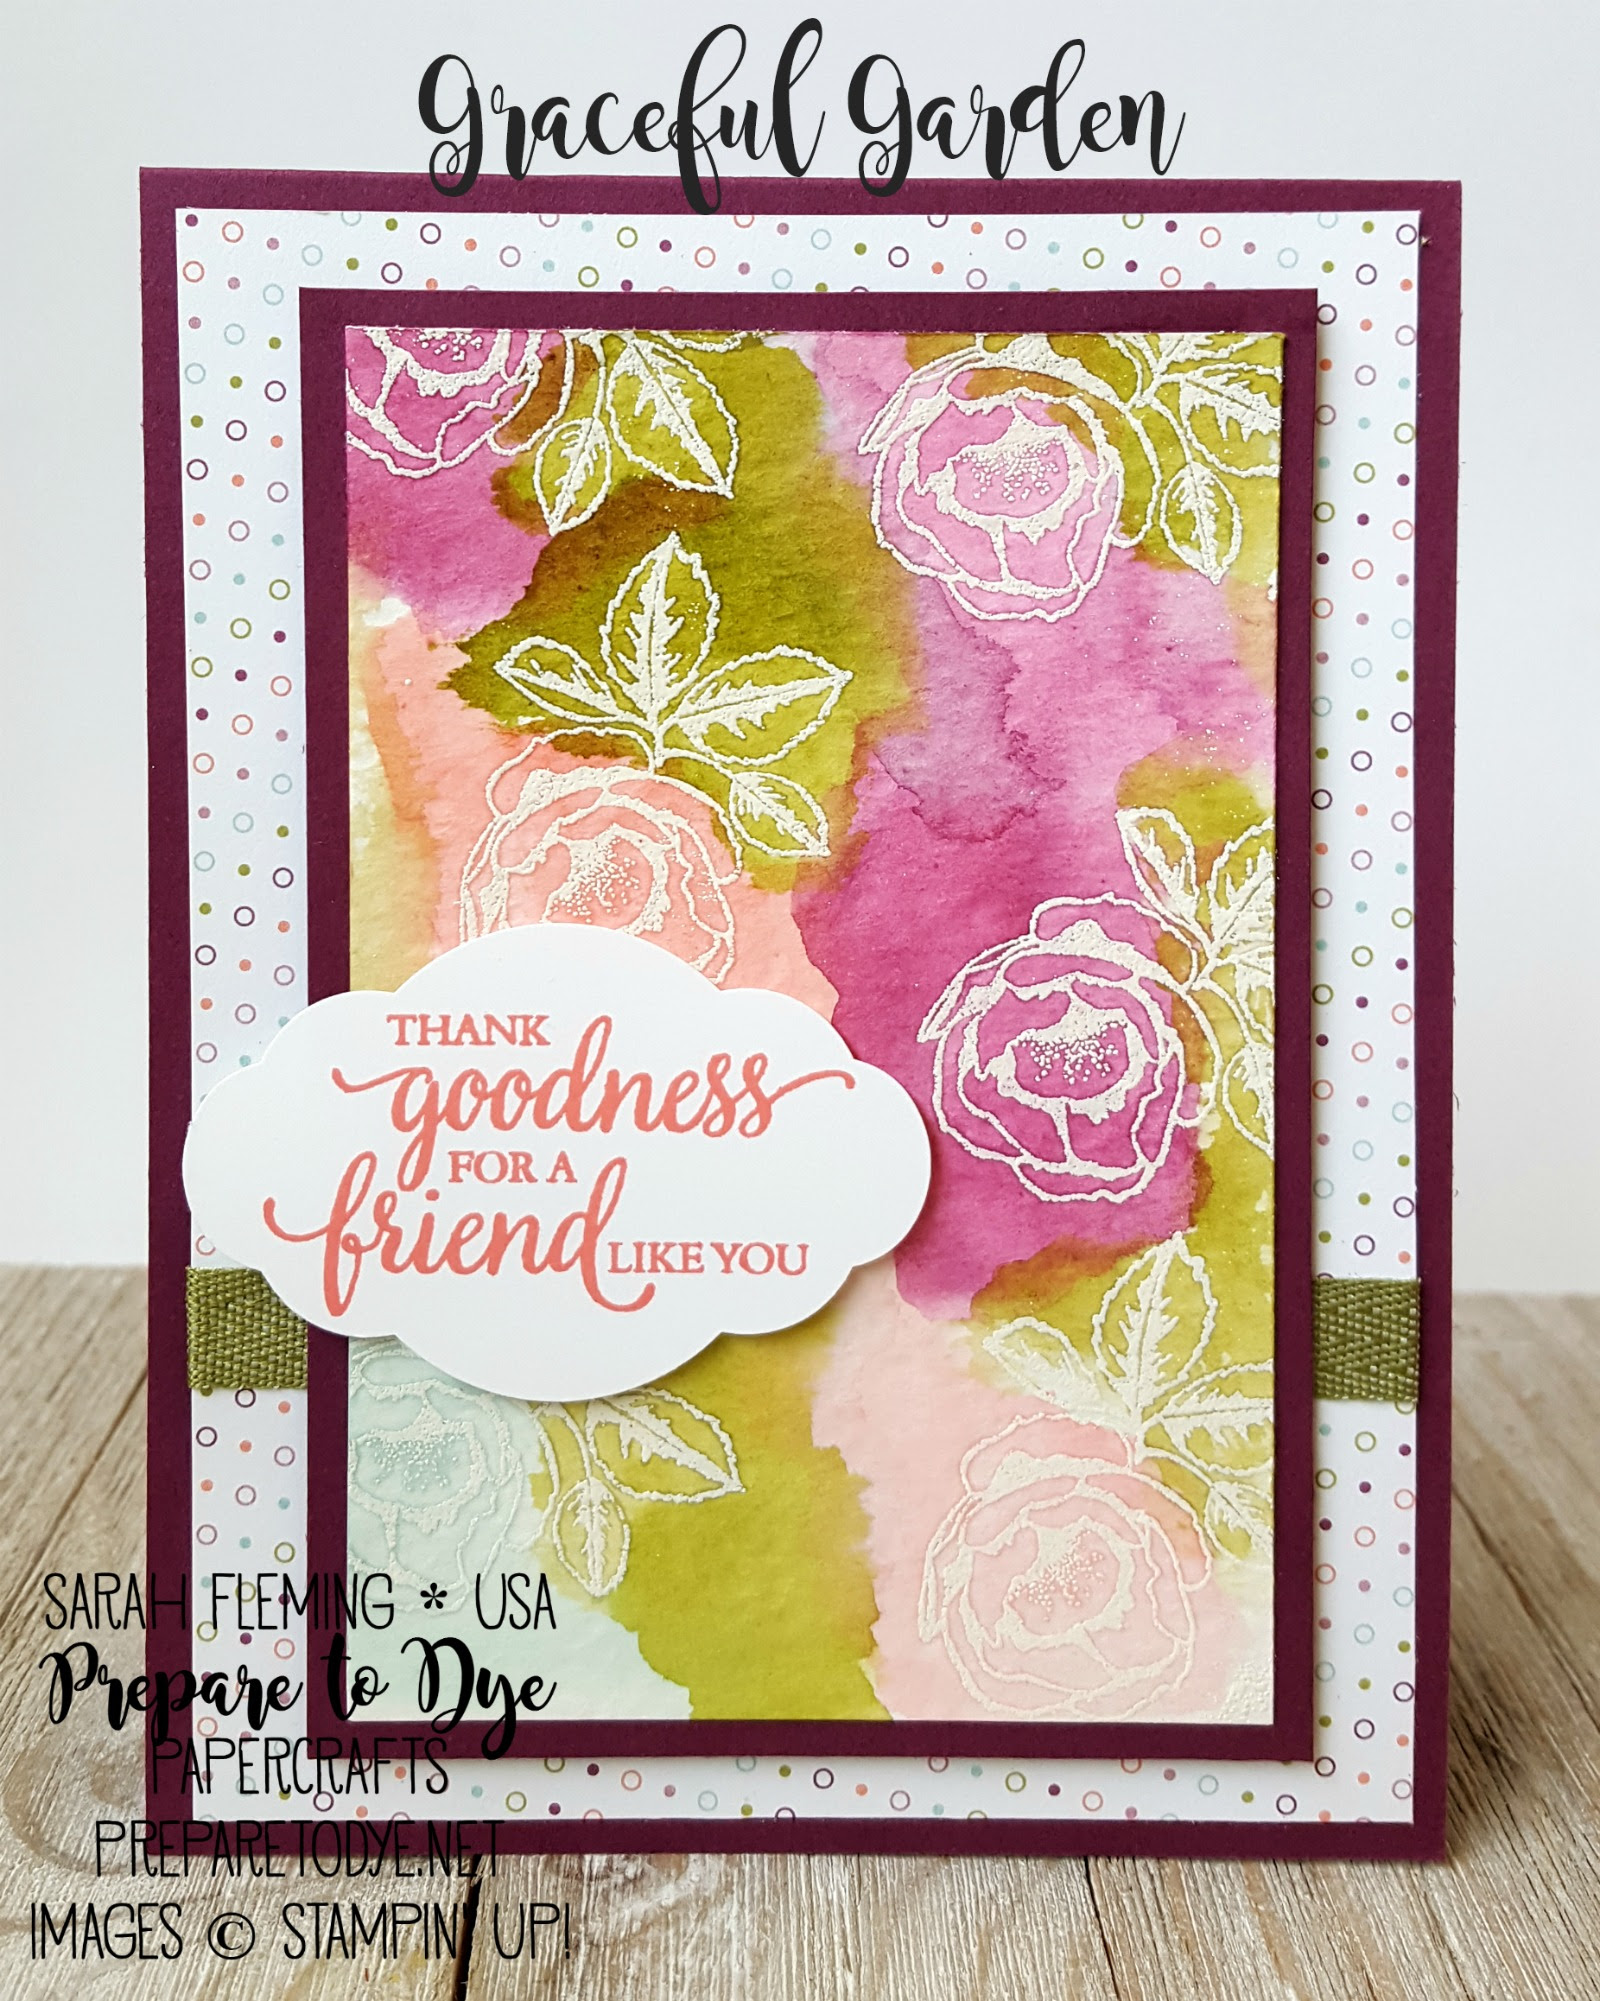 Stampin' Up! Graceful Garden and So Many Shells with Petal Garden DSP stack, Pretty Label Punch - Watercolor Emboss Resist - Sarah Fleming - Prepare to Dye Papercrafts